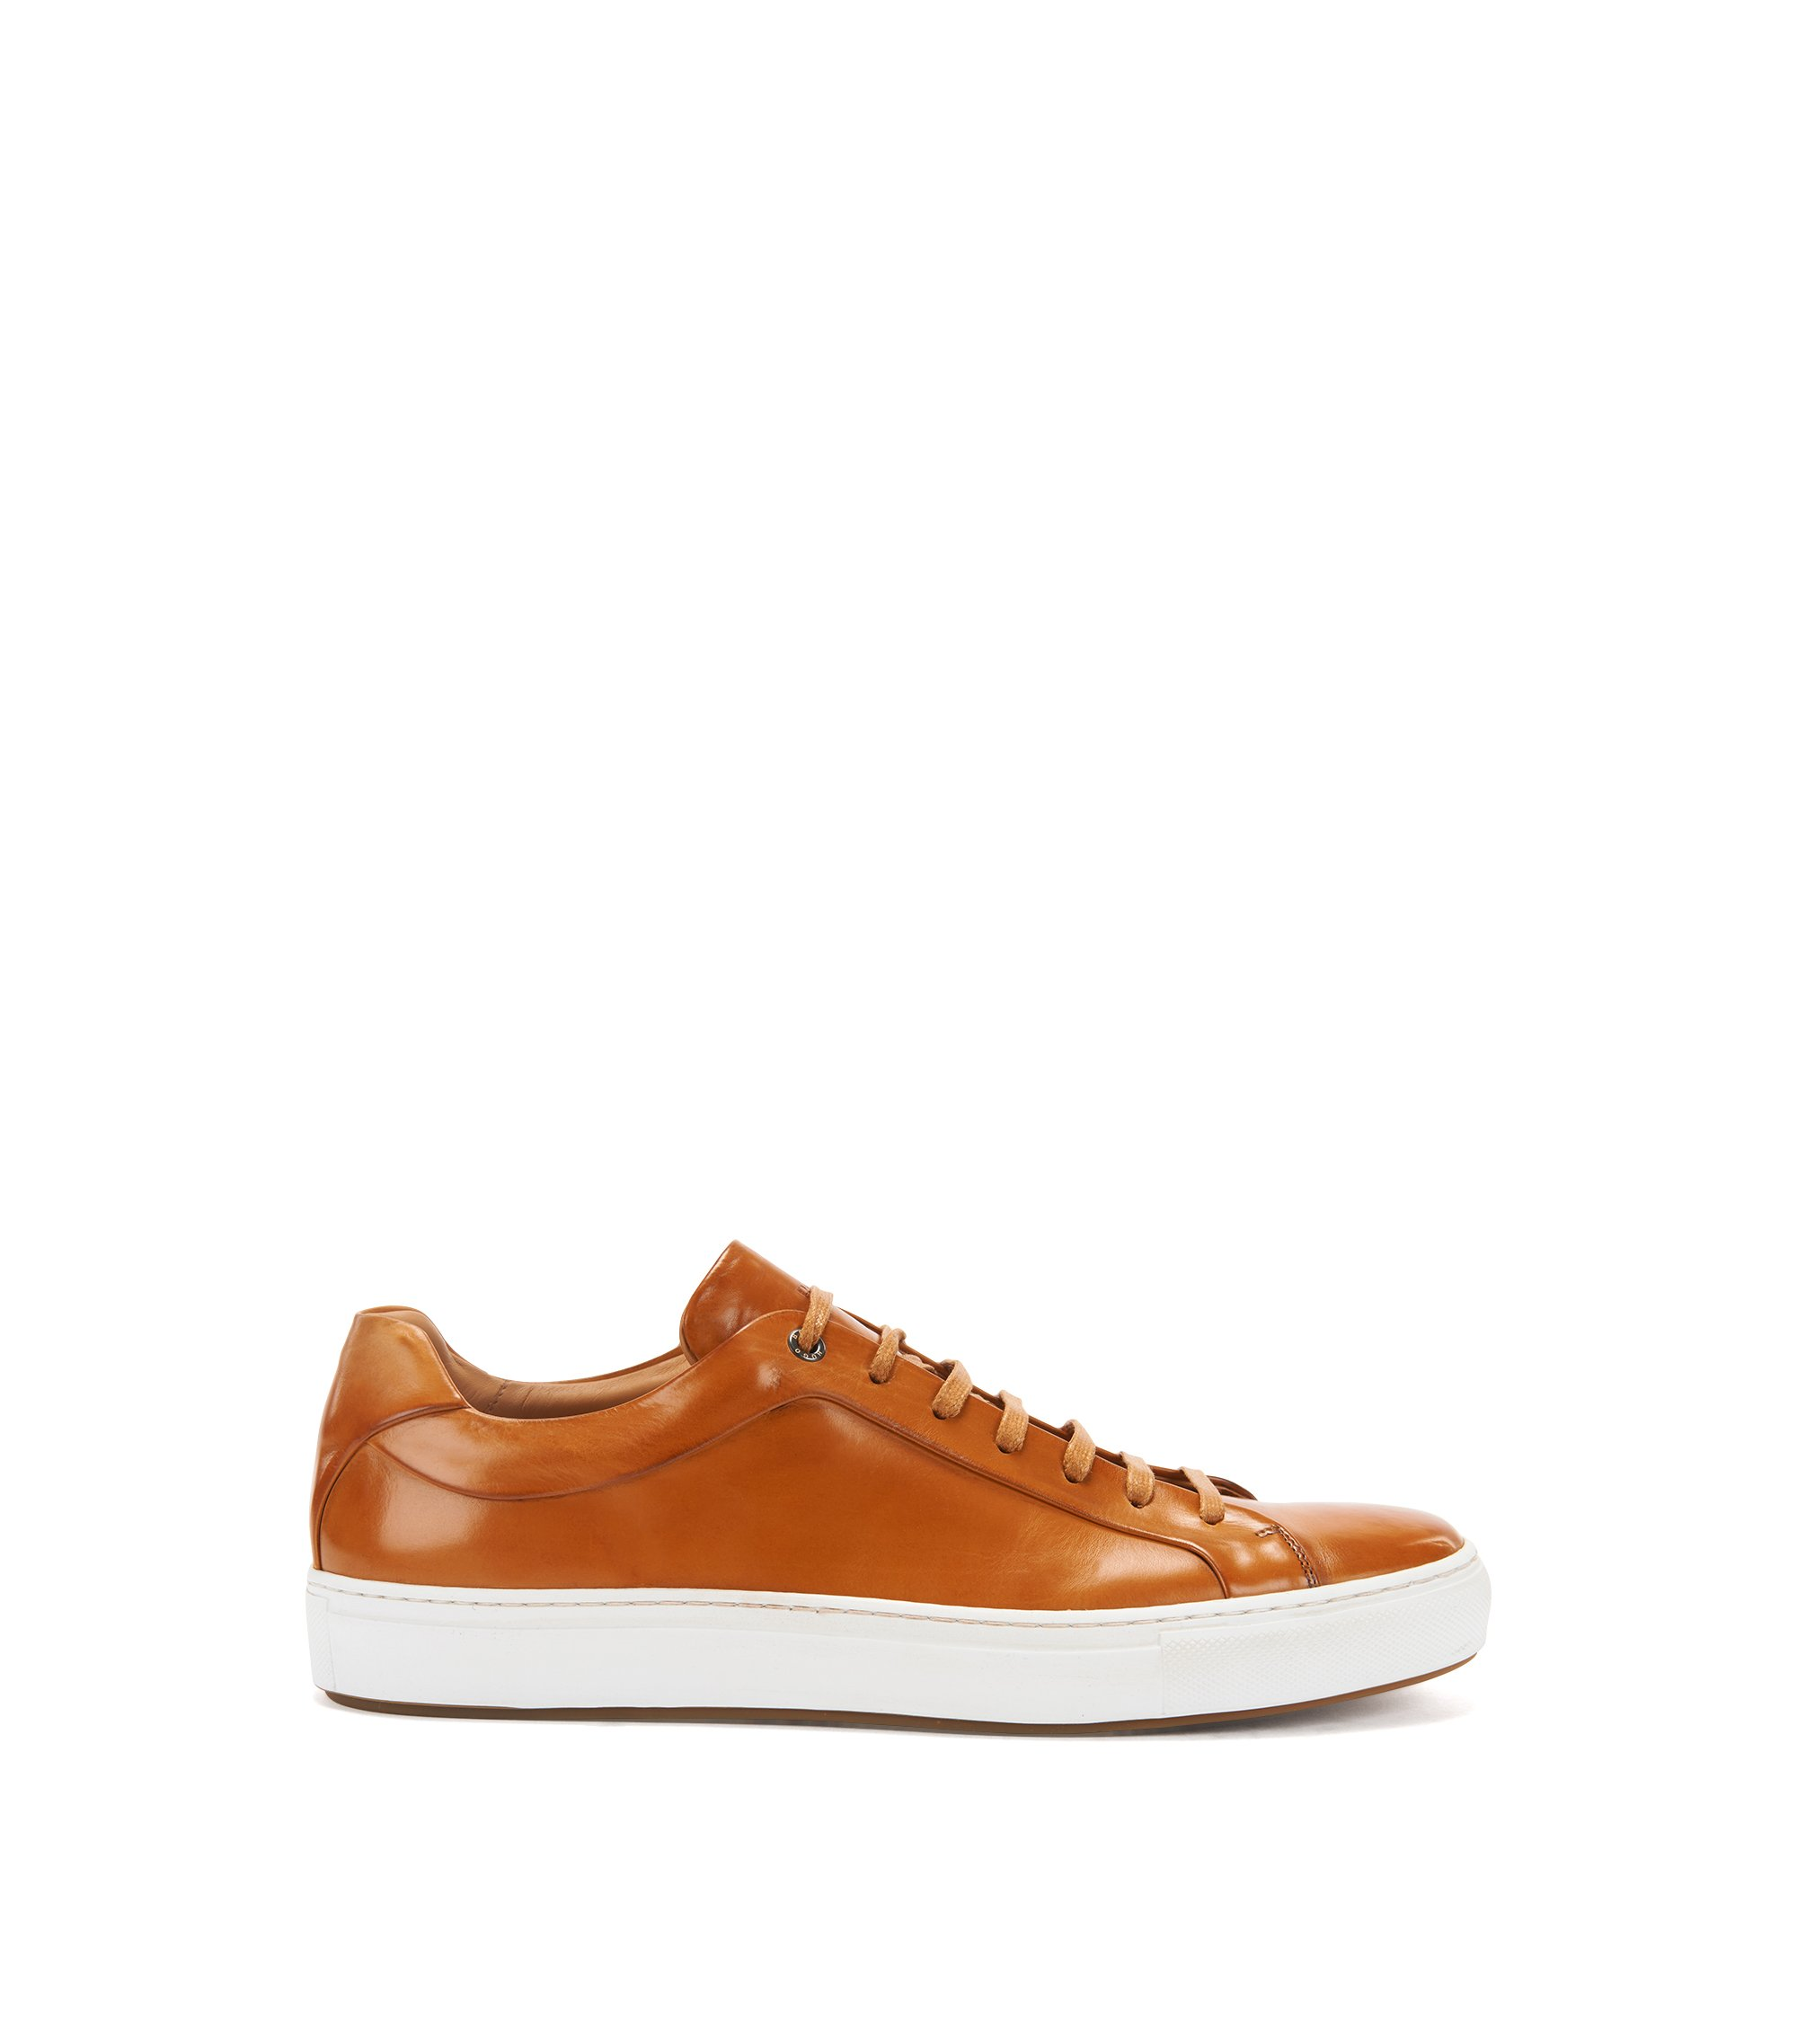 Baskets style tennis en cuir bruni, Marron